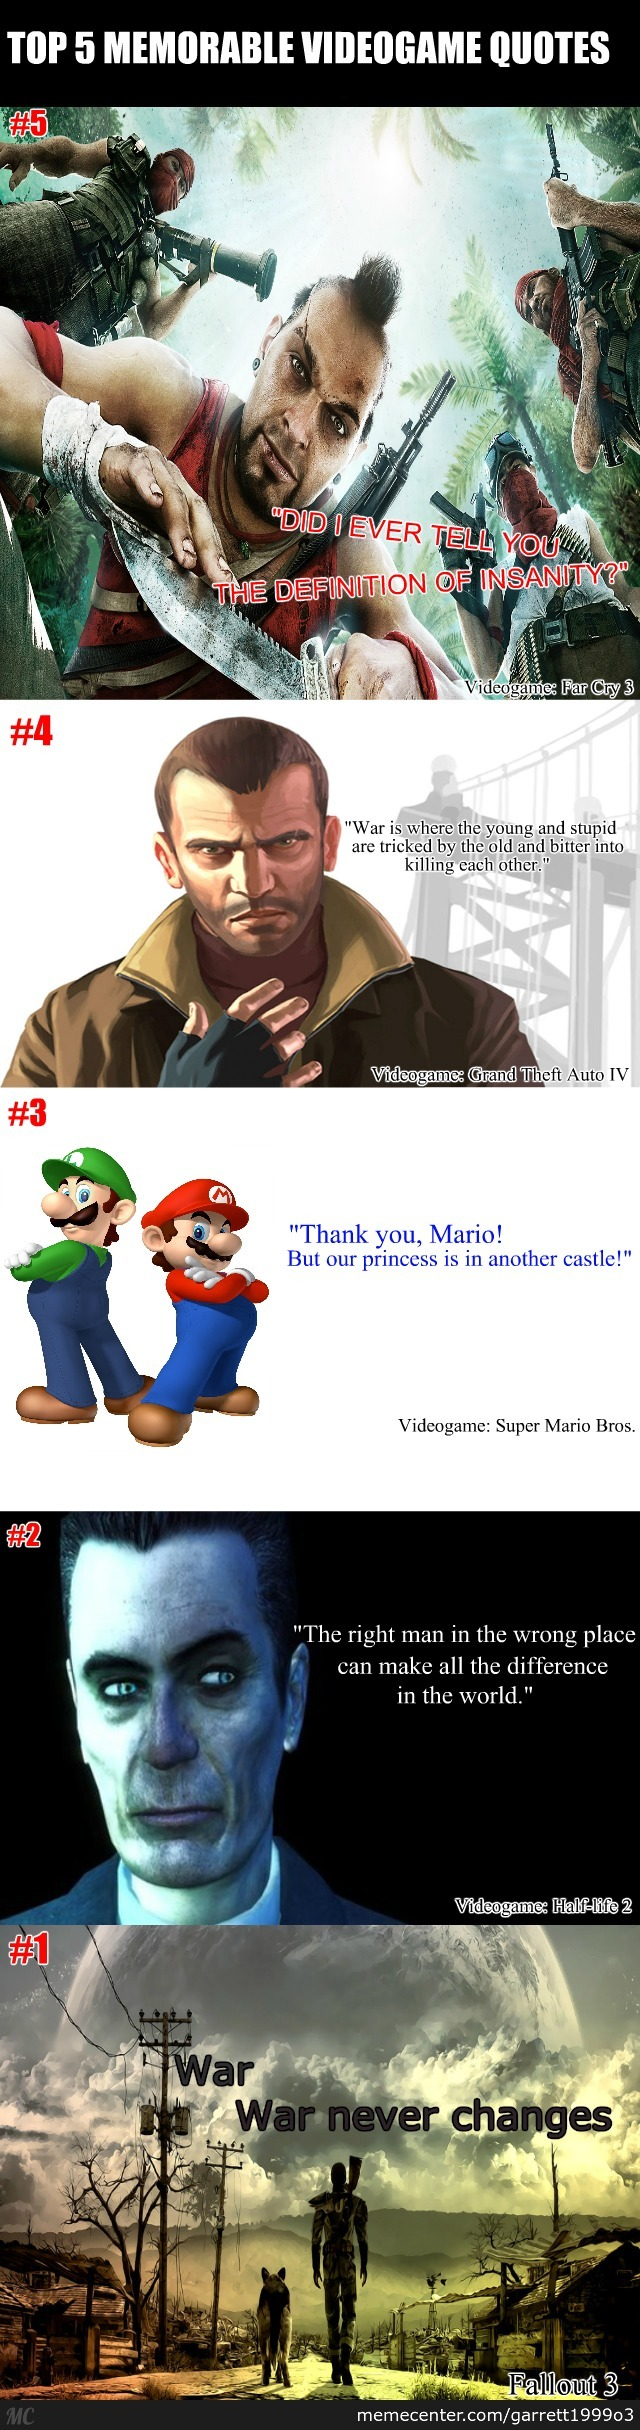 Top 5 Most Memorable Videogame Quotes By Recyclebin Meme Center